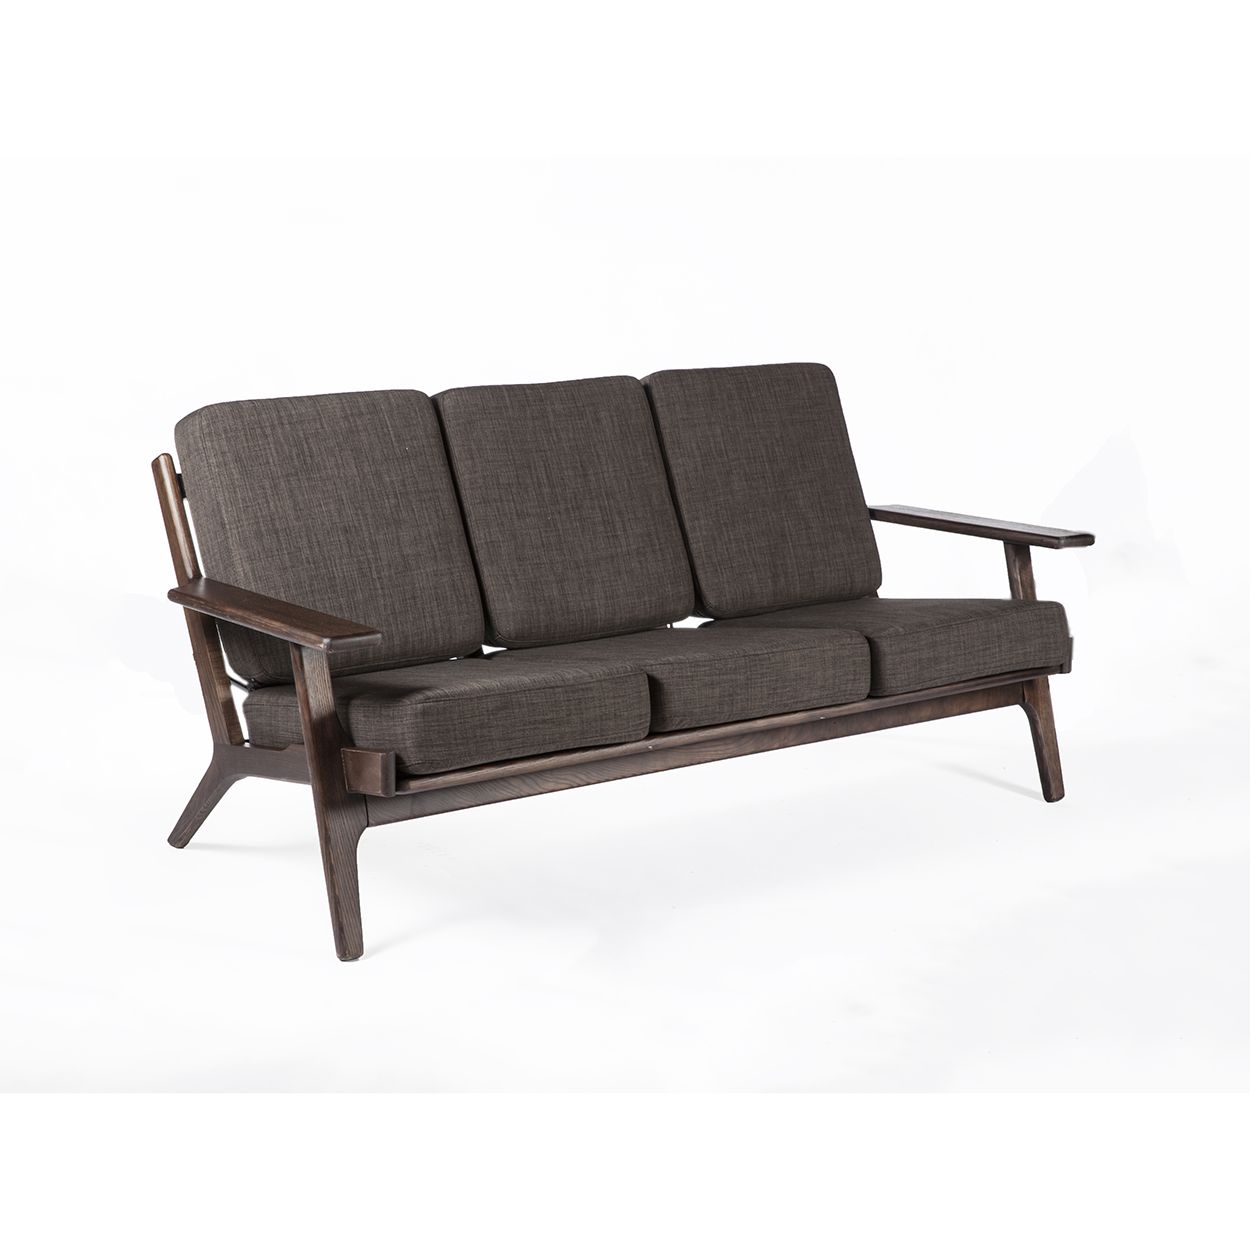 GE 290 Plank Sofa - Grey | jerome | Pinterest | Plank, Bungalow ...